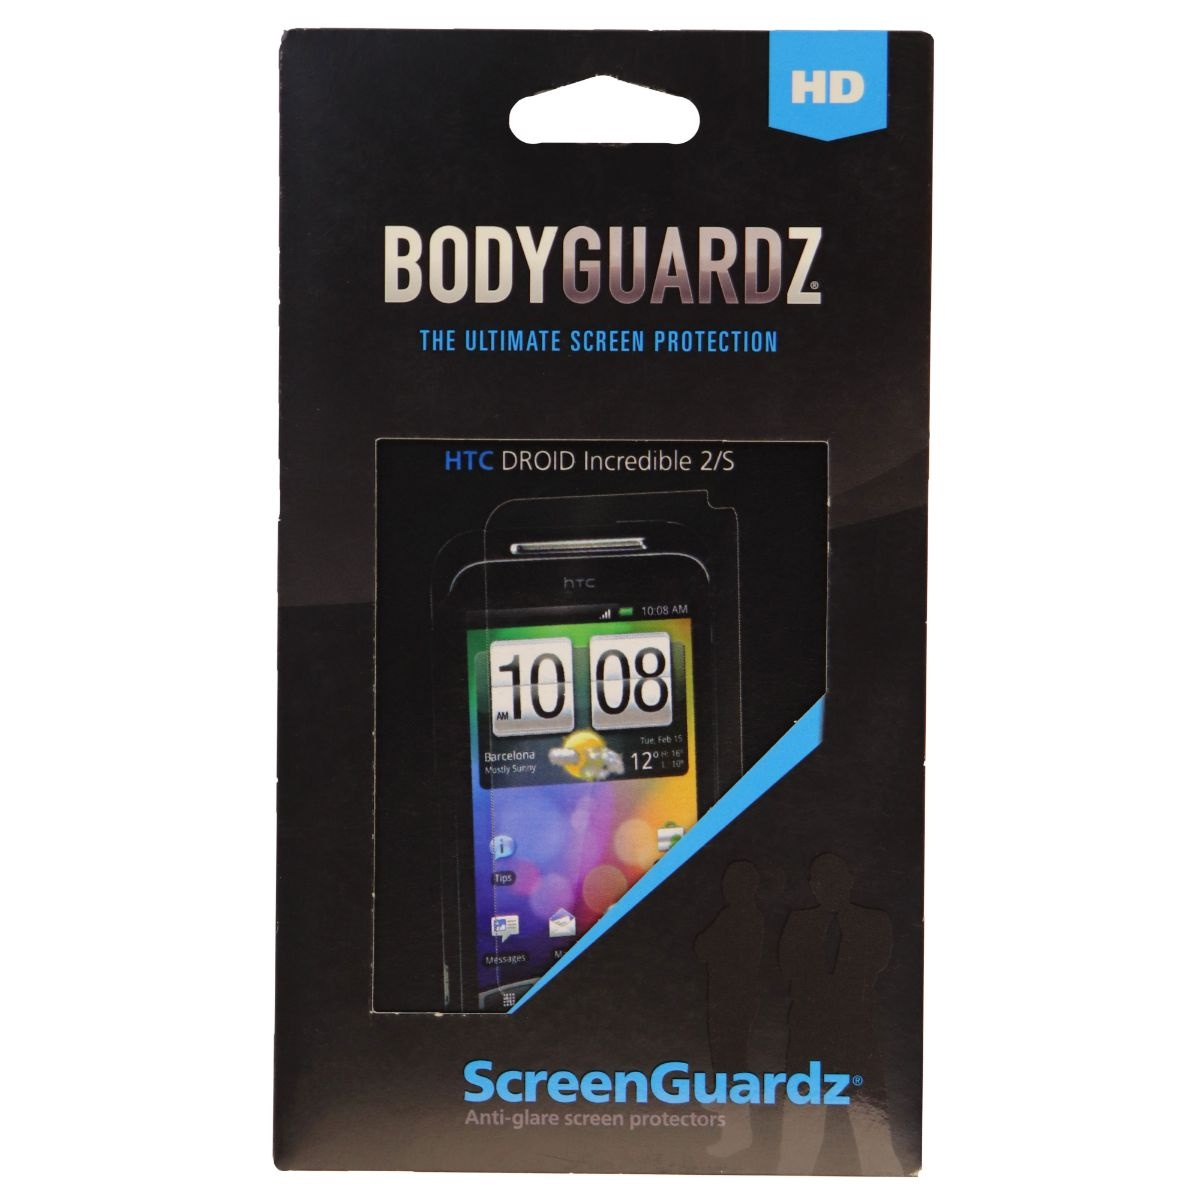 BodyGuardz ScreenGuardz HD Anti Glare Screen Protector HTC Droid Incredible 2